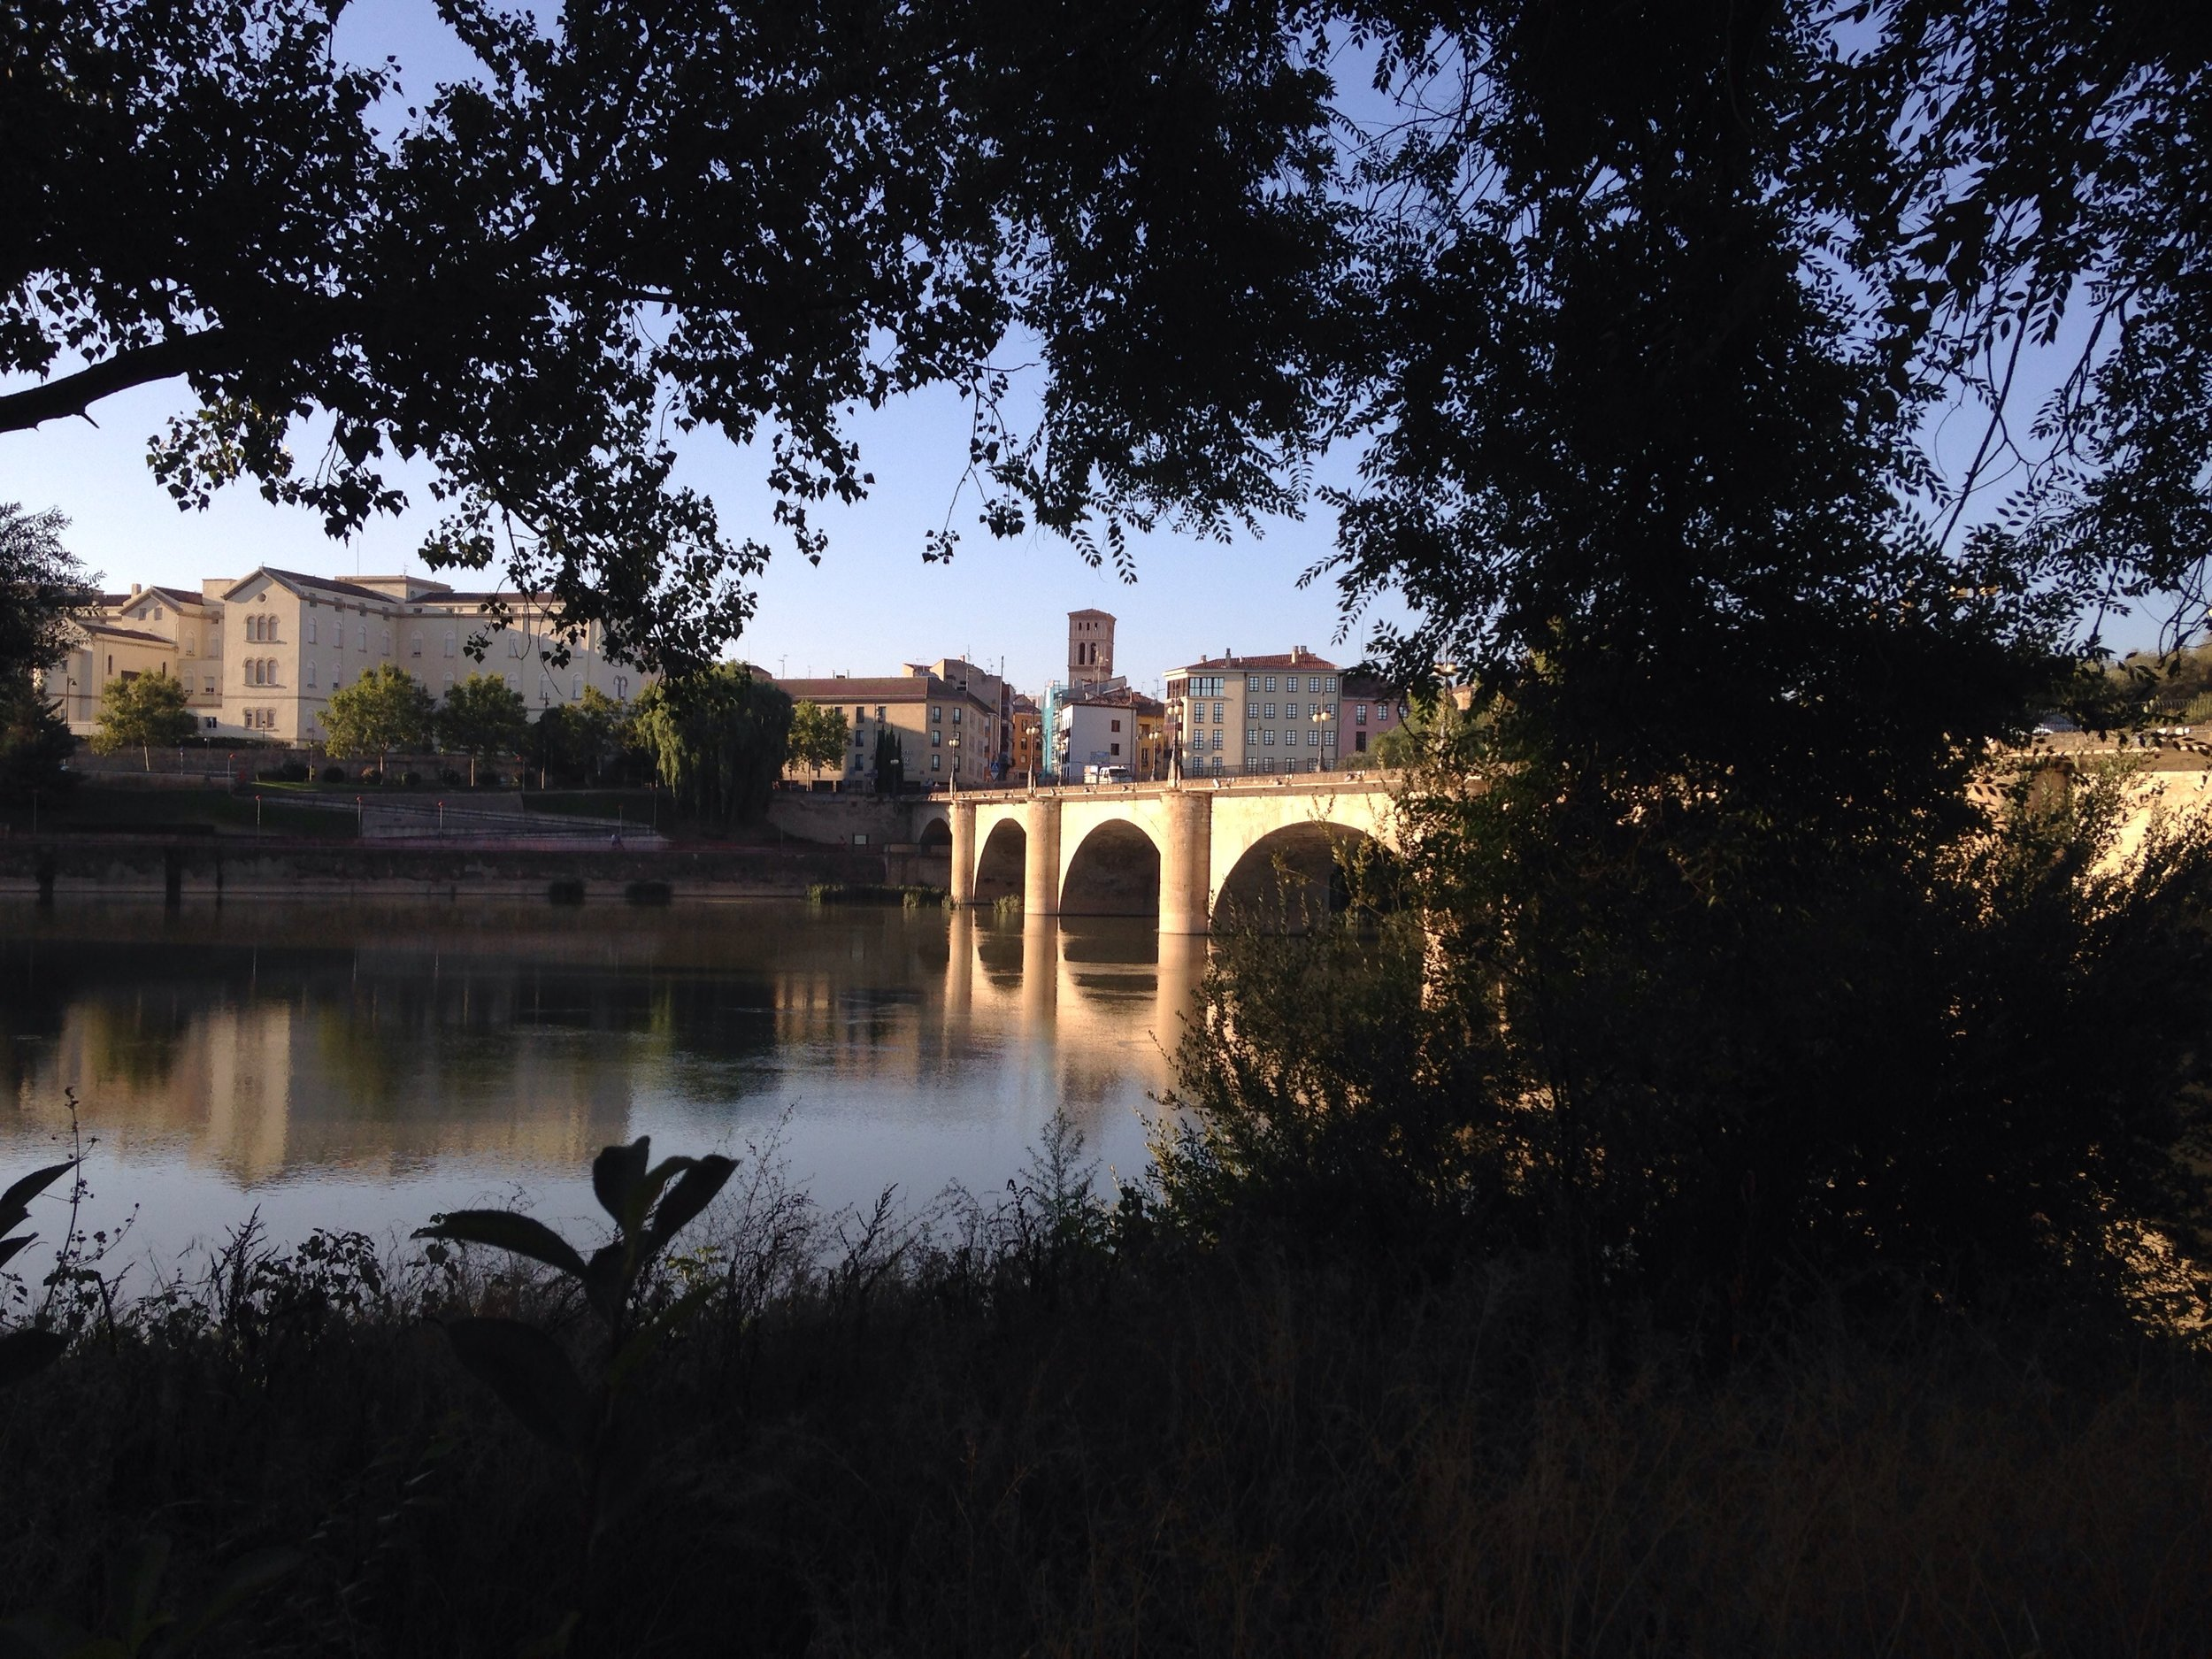 The approach to Logrono